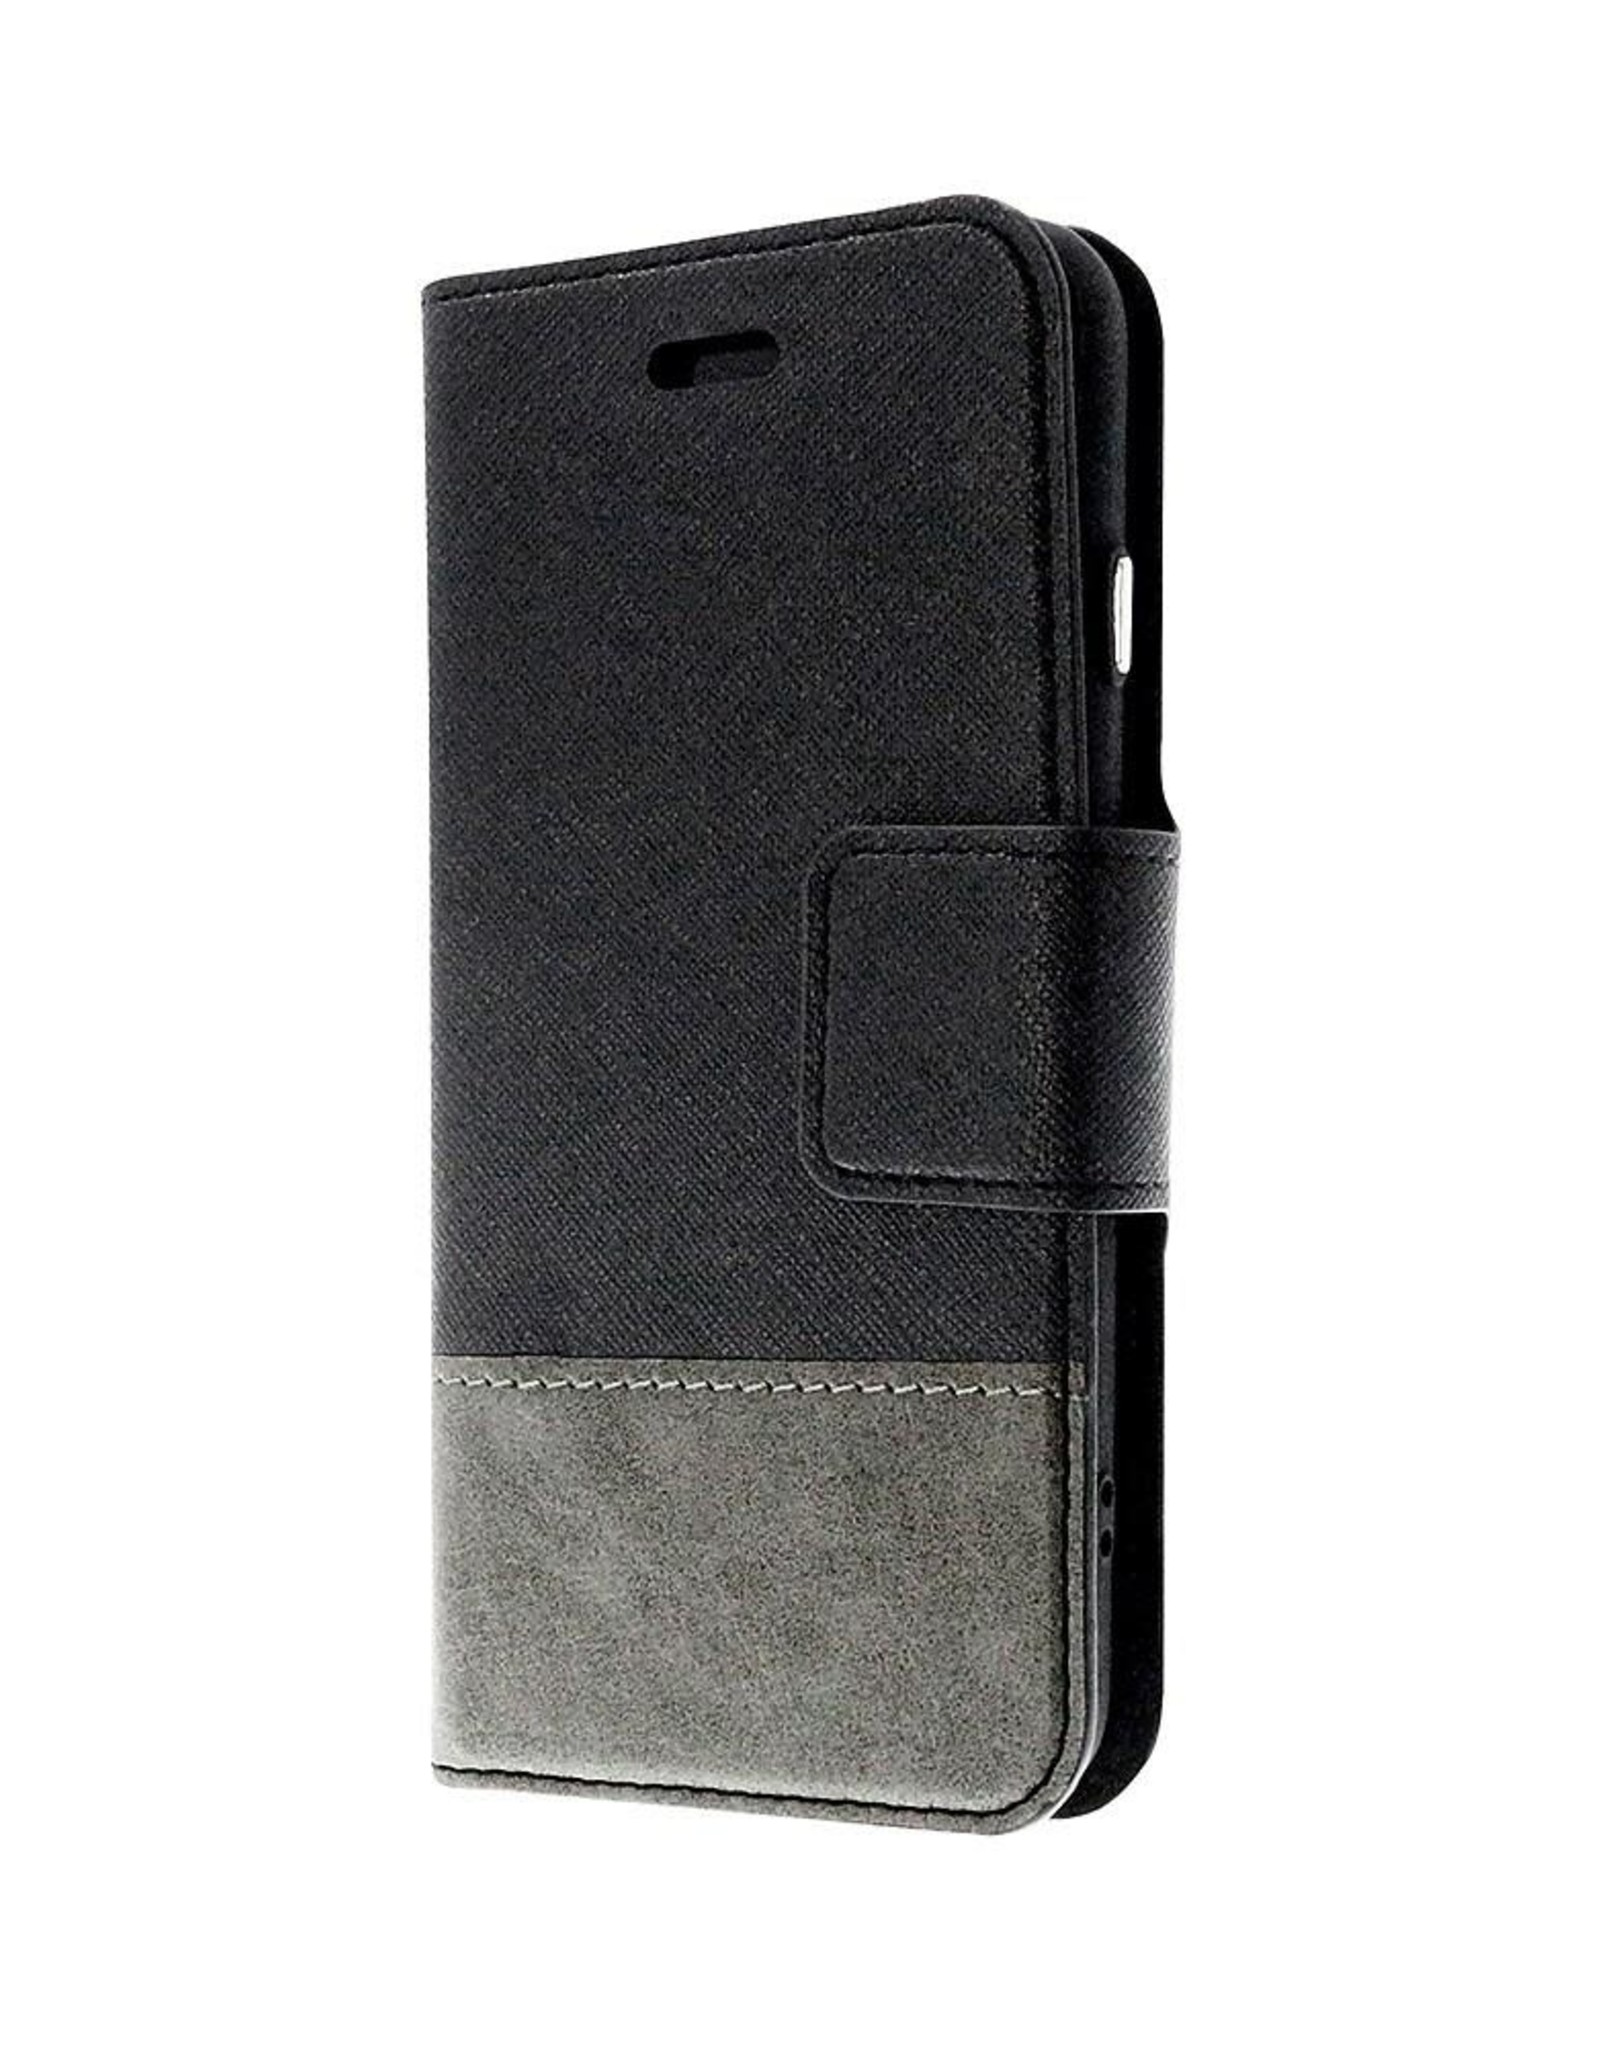 Caseco Caseco | Broadway 2-in-1 RFID Shield Folio Case - iPhone SE Black CC-BD-iPSE-BK